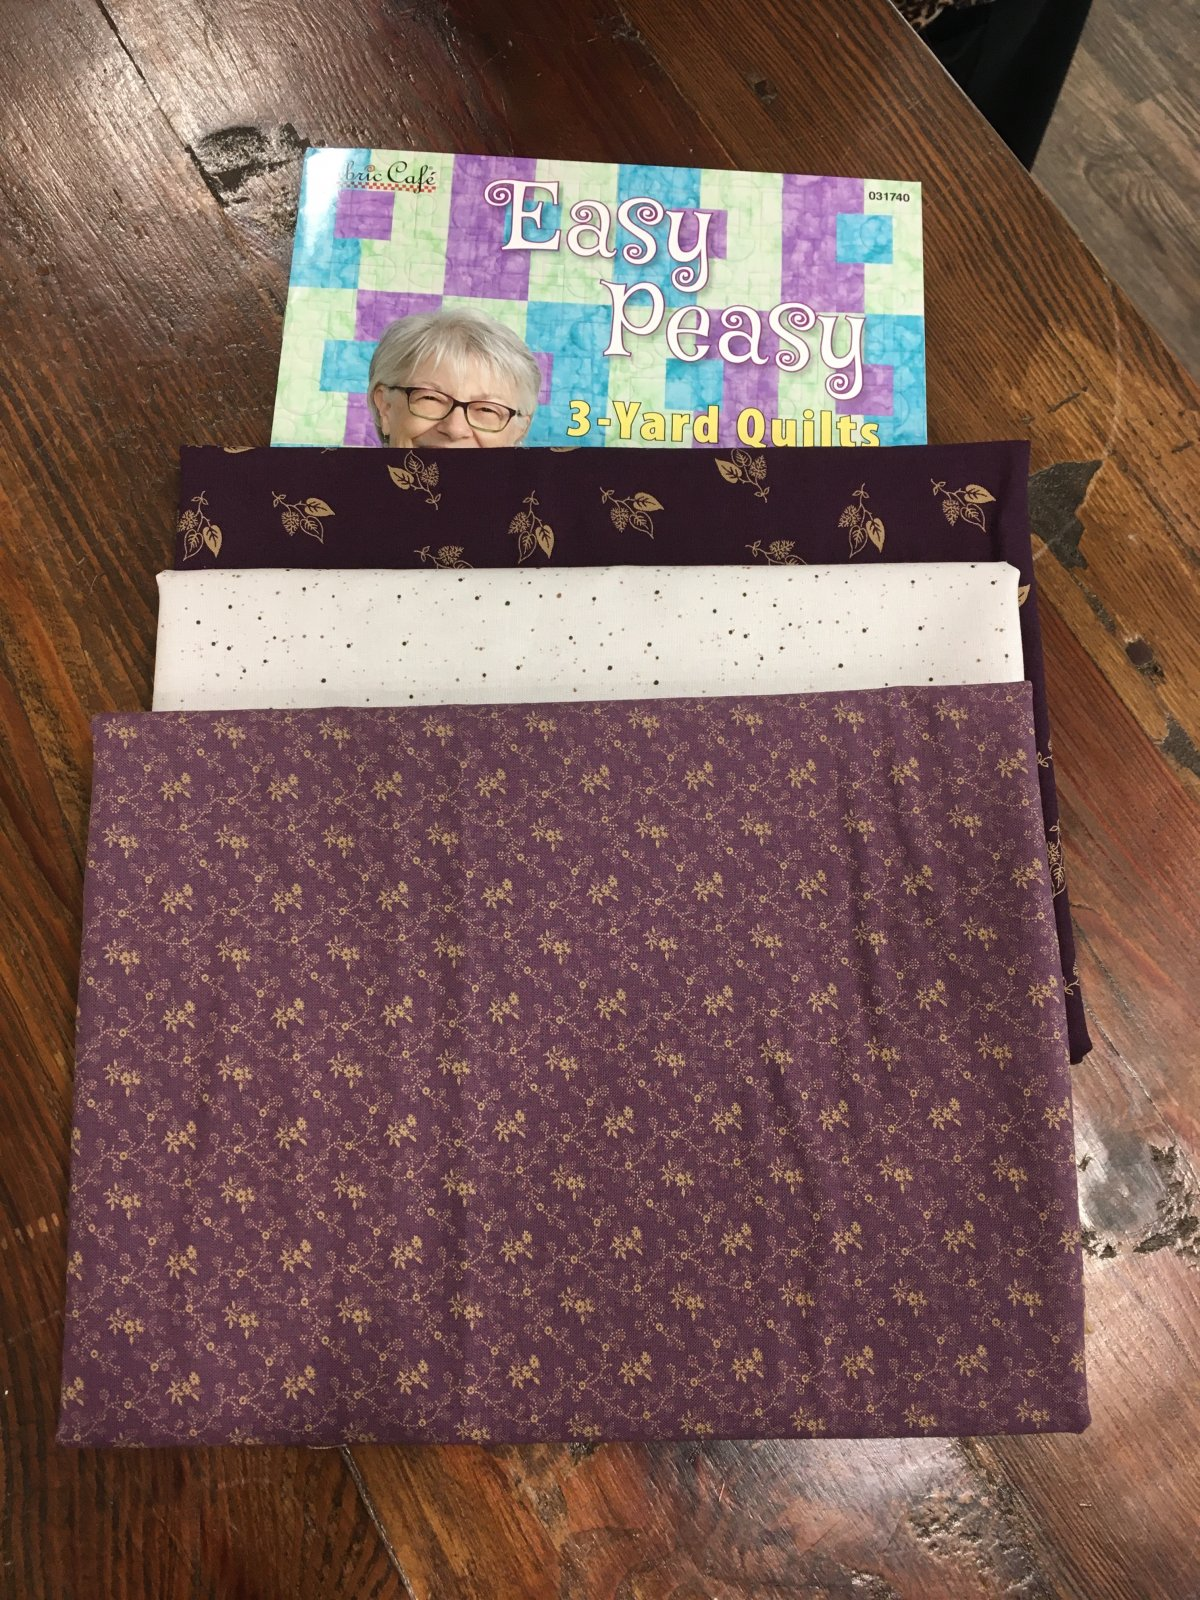 3 Yard Cuts for 3 Yard Quilts